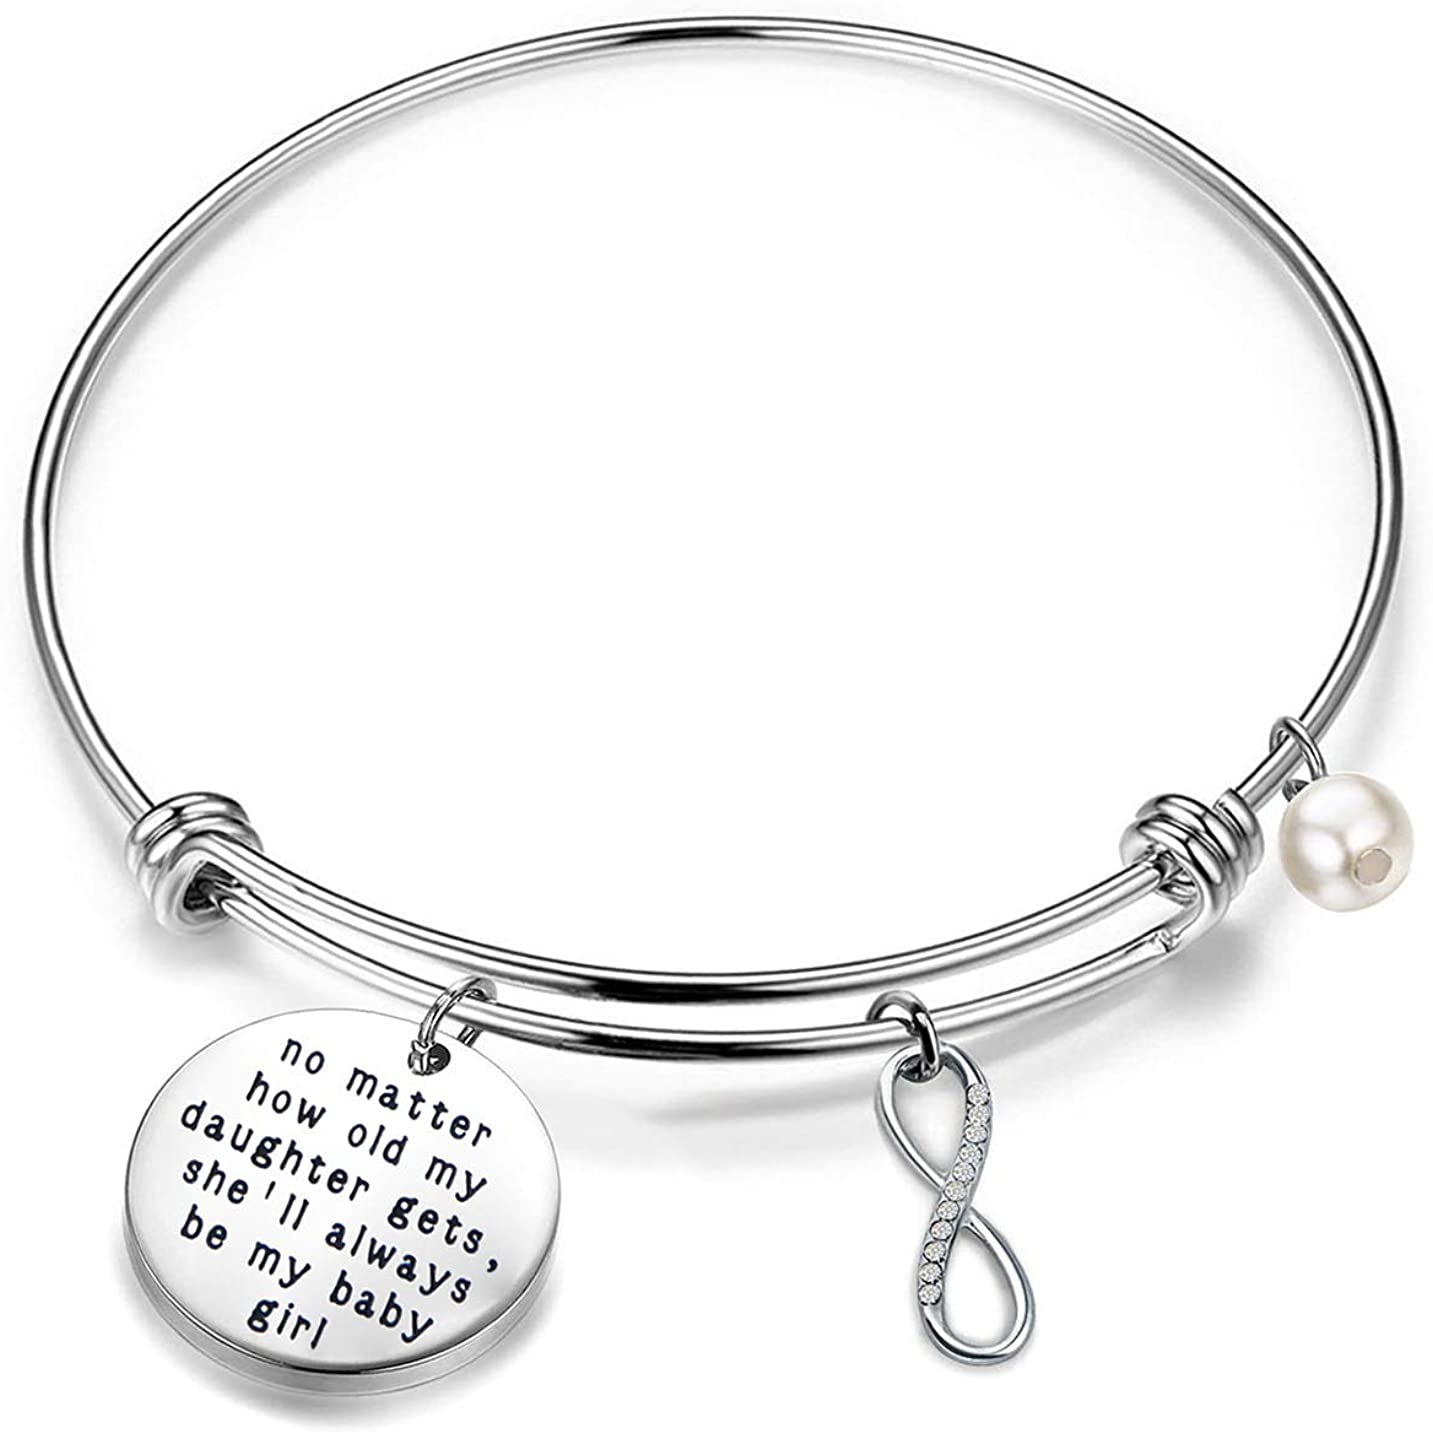 LQRI Daughter Bracelet Bride to Be Gift No Matter How Old My Daughter Gets She'll Always Be My Baby Girl Bracelet Wedding Gift from Daddy Mommy